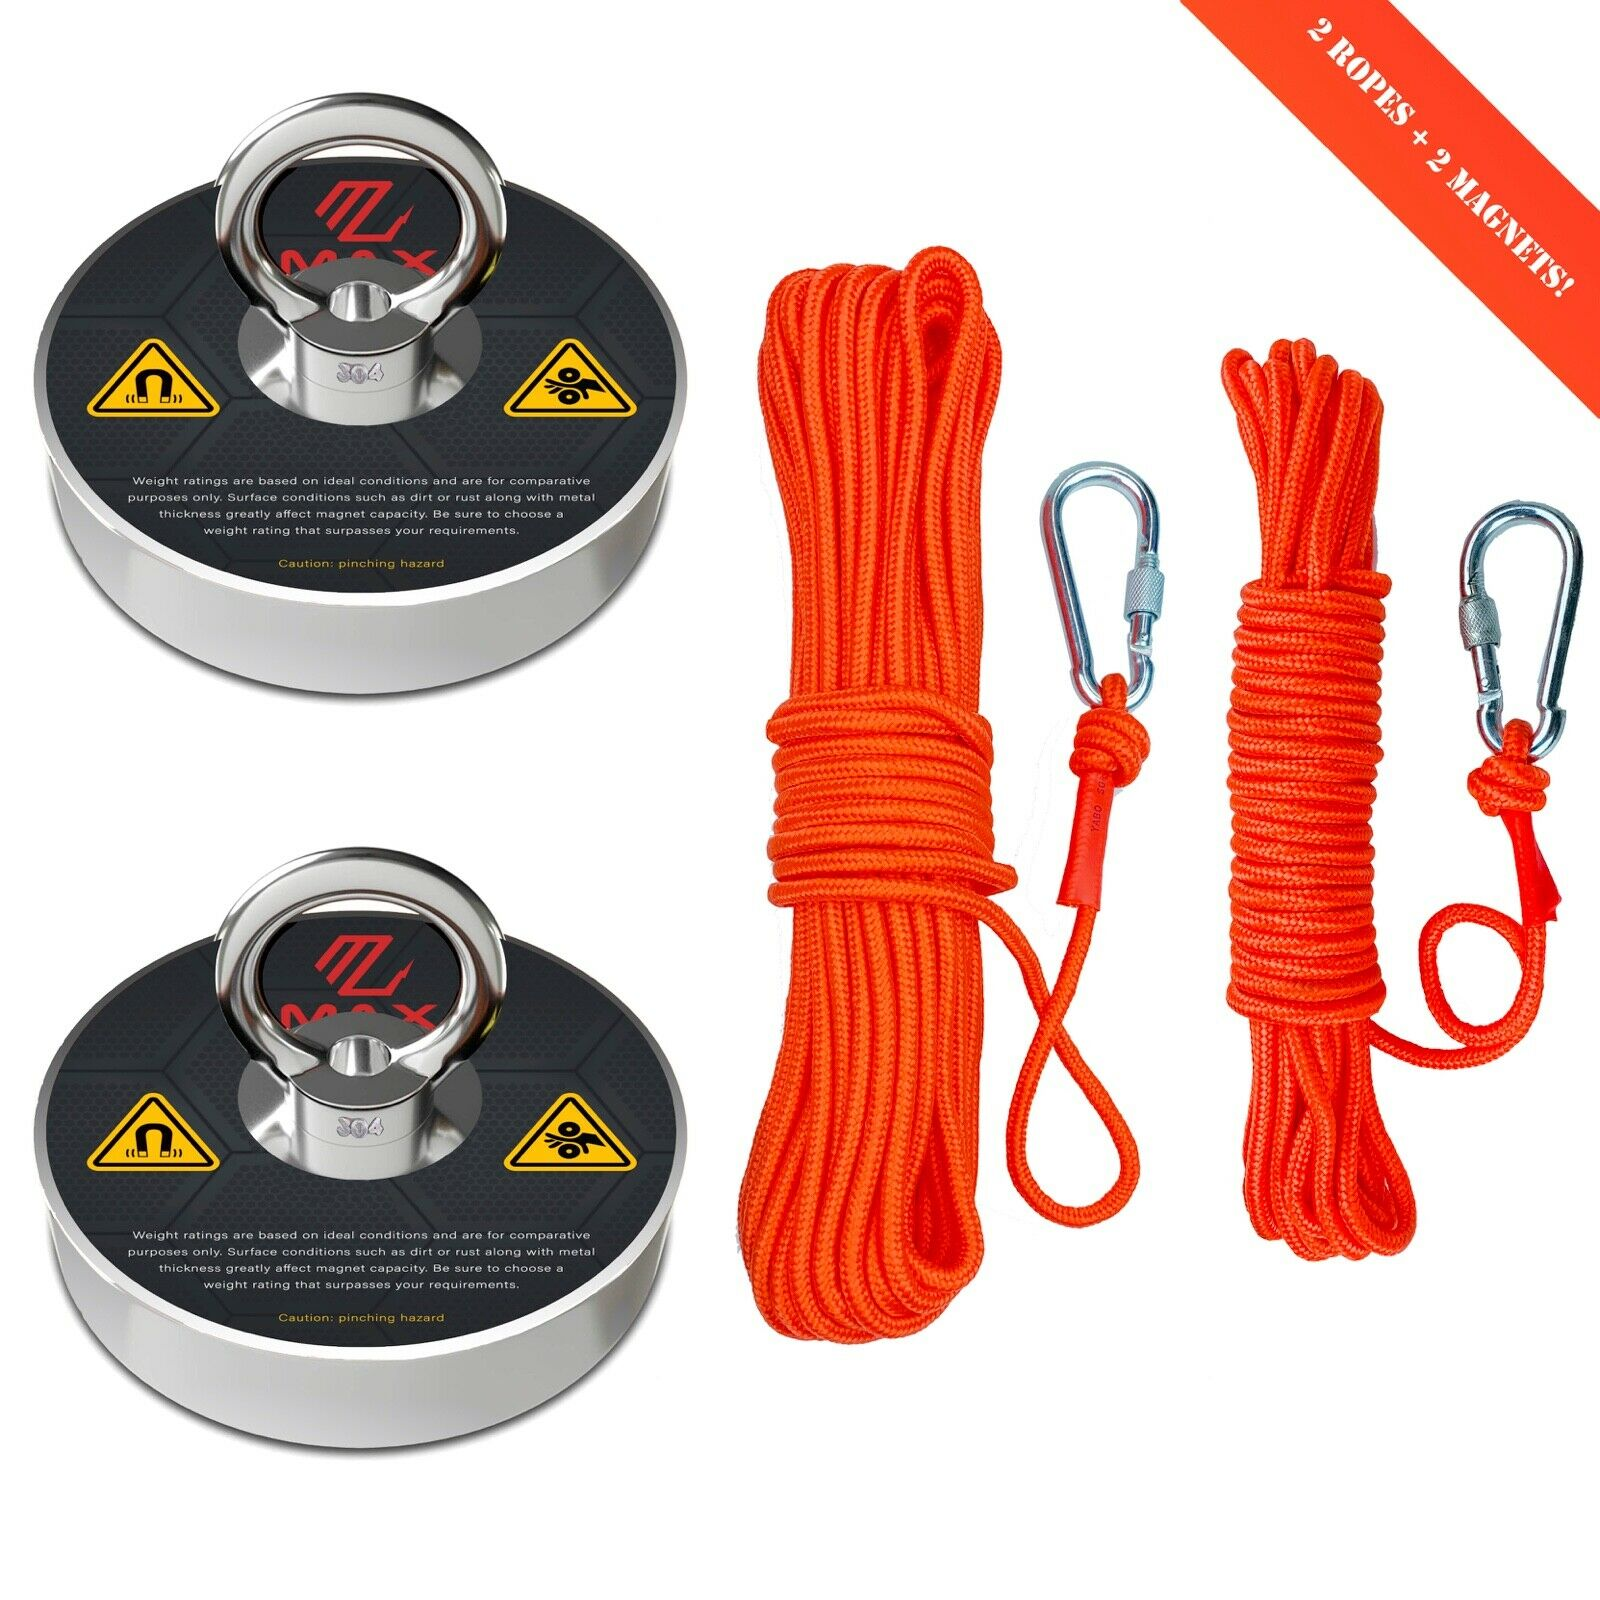 MaxMagnets Fishing Magnet Kit, 2 Ropes with Twist Locking Ca